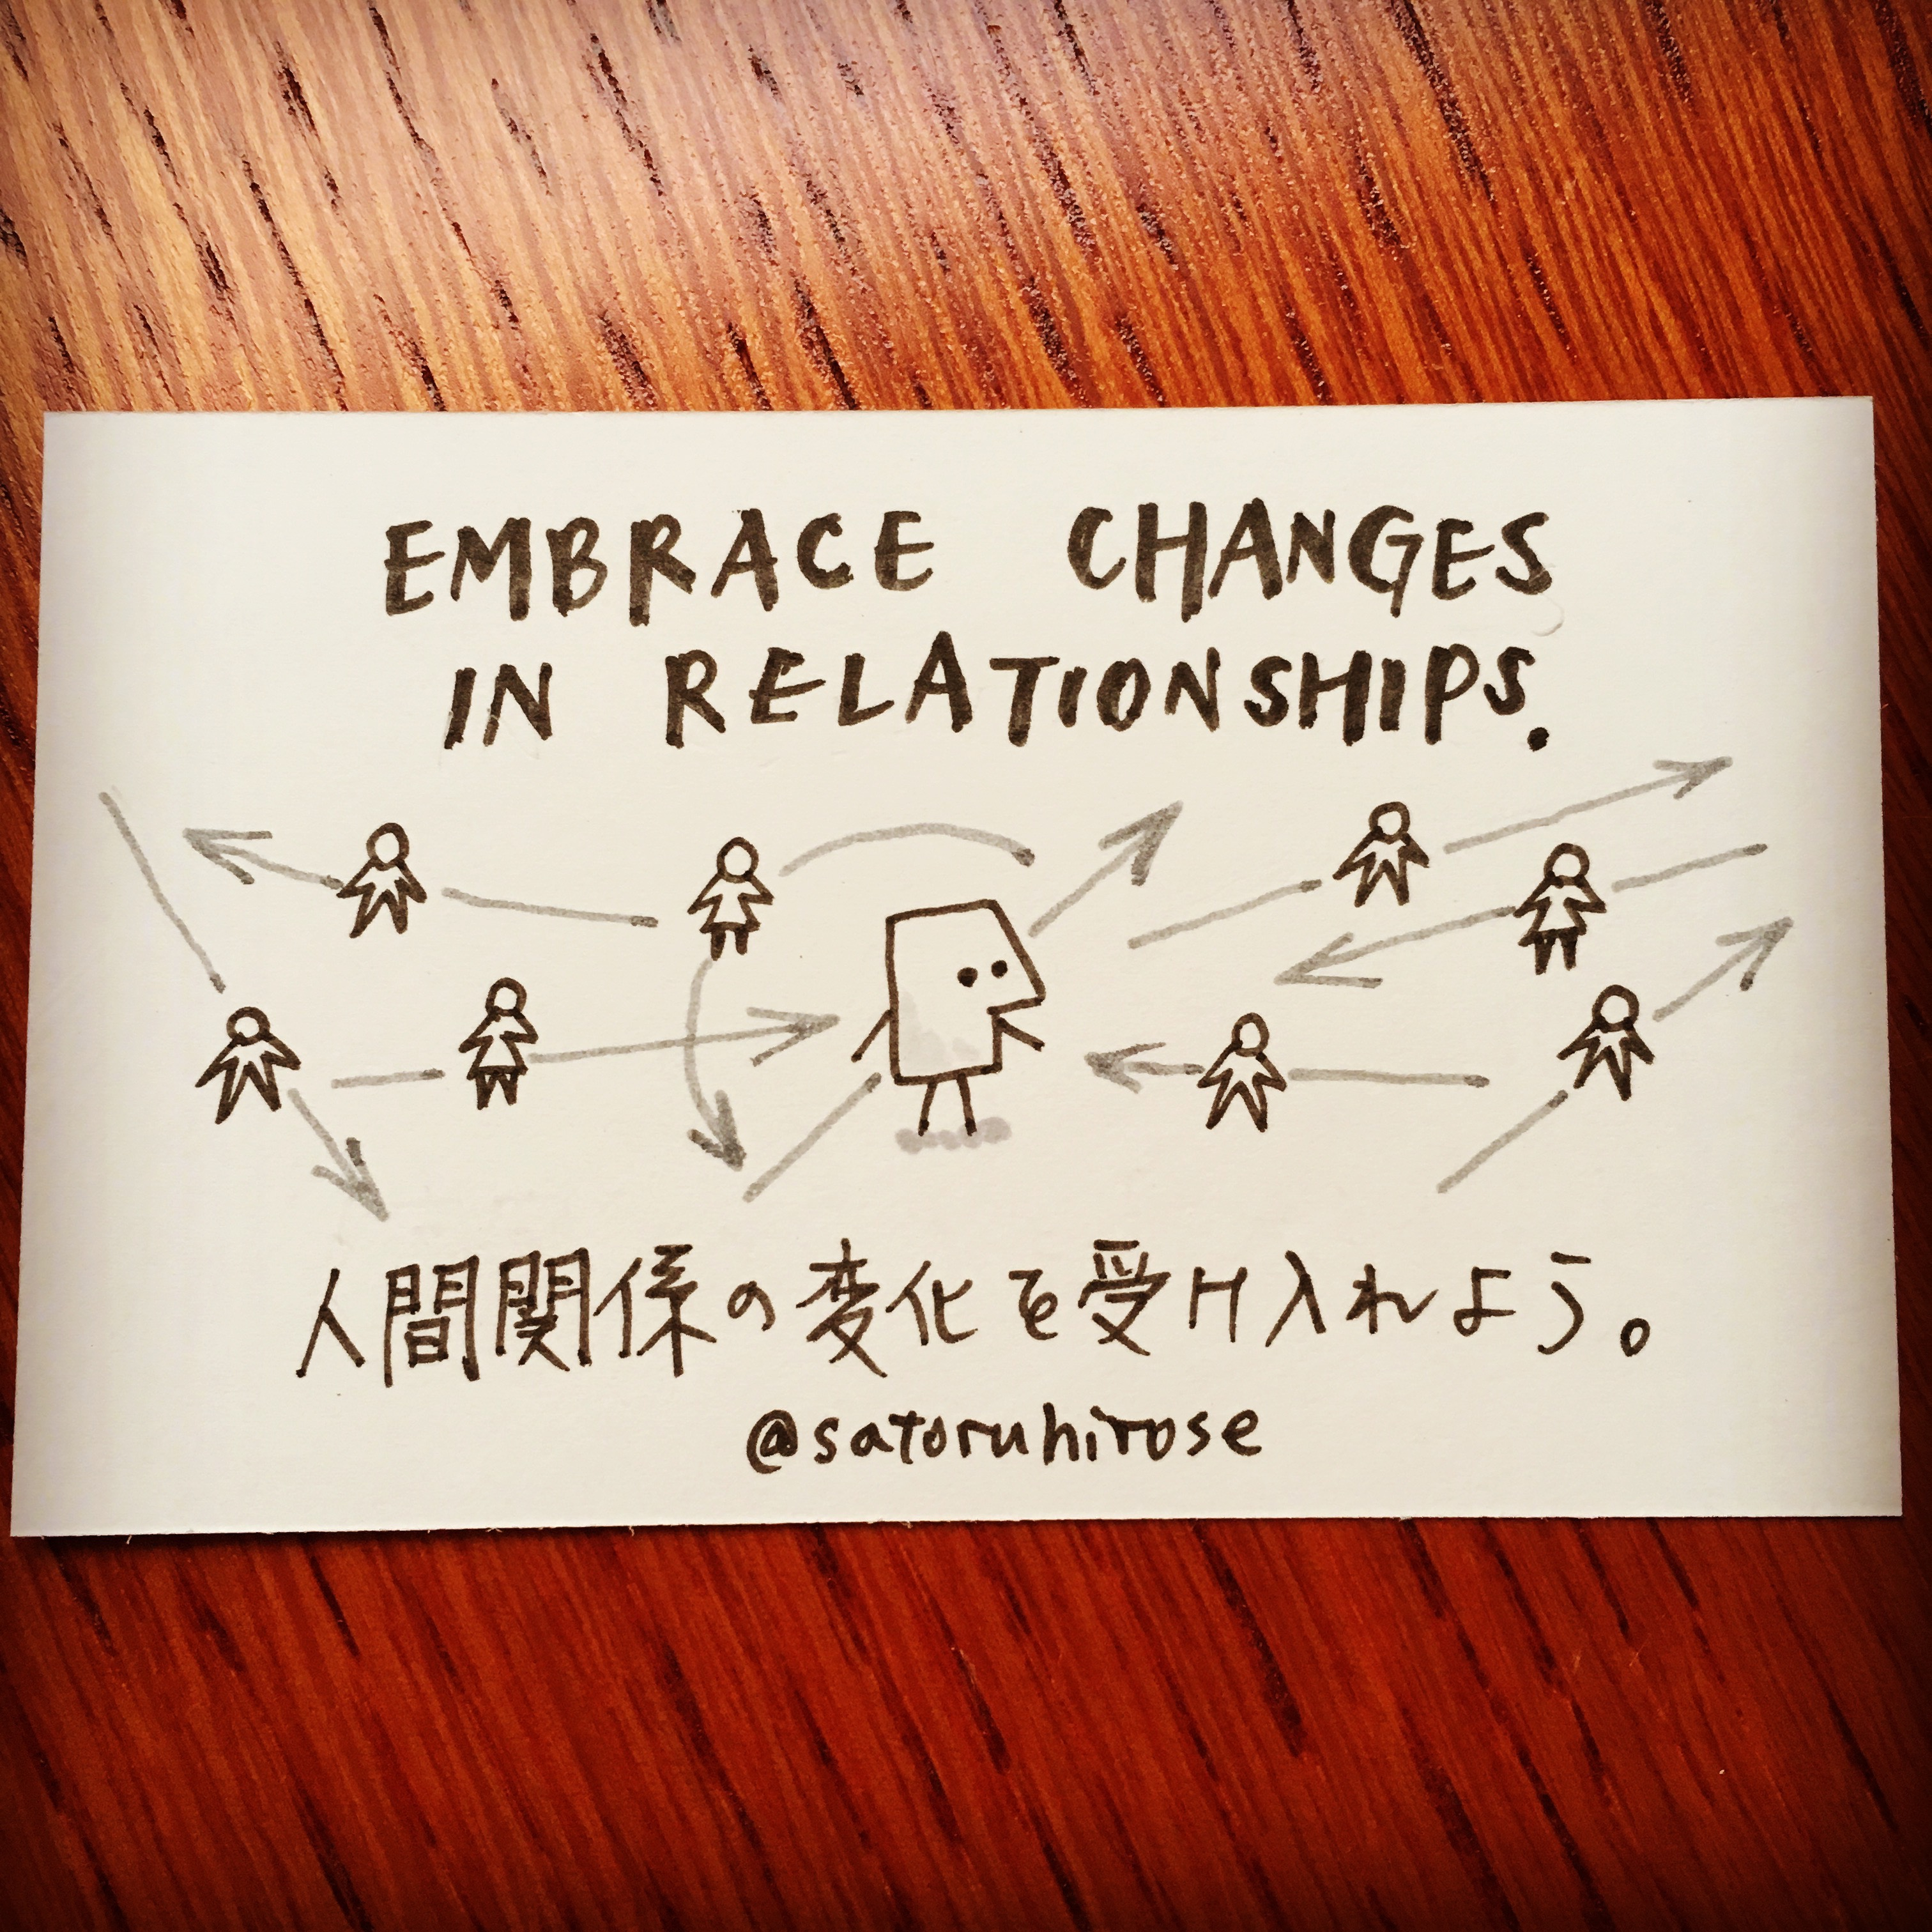 Embrace changes in relationships.